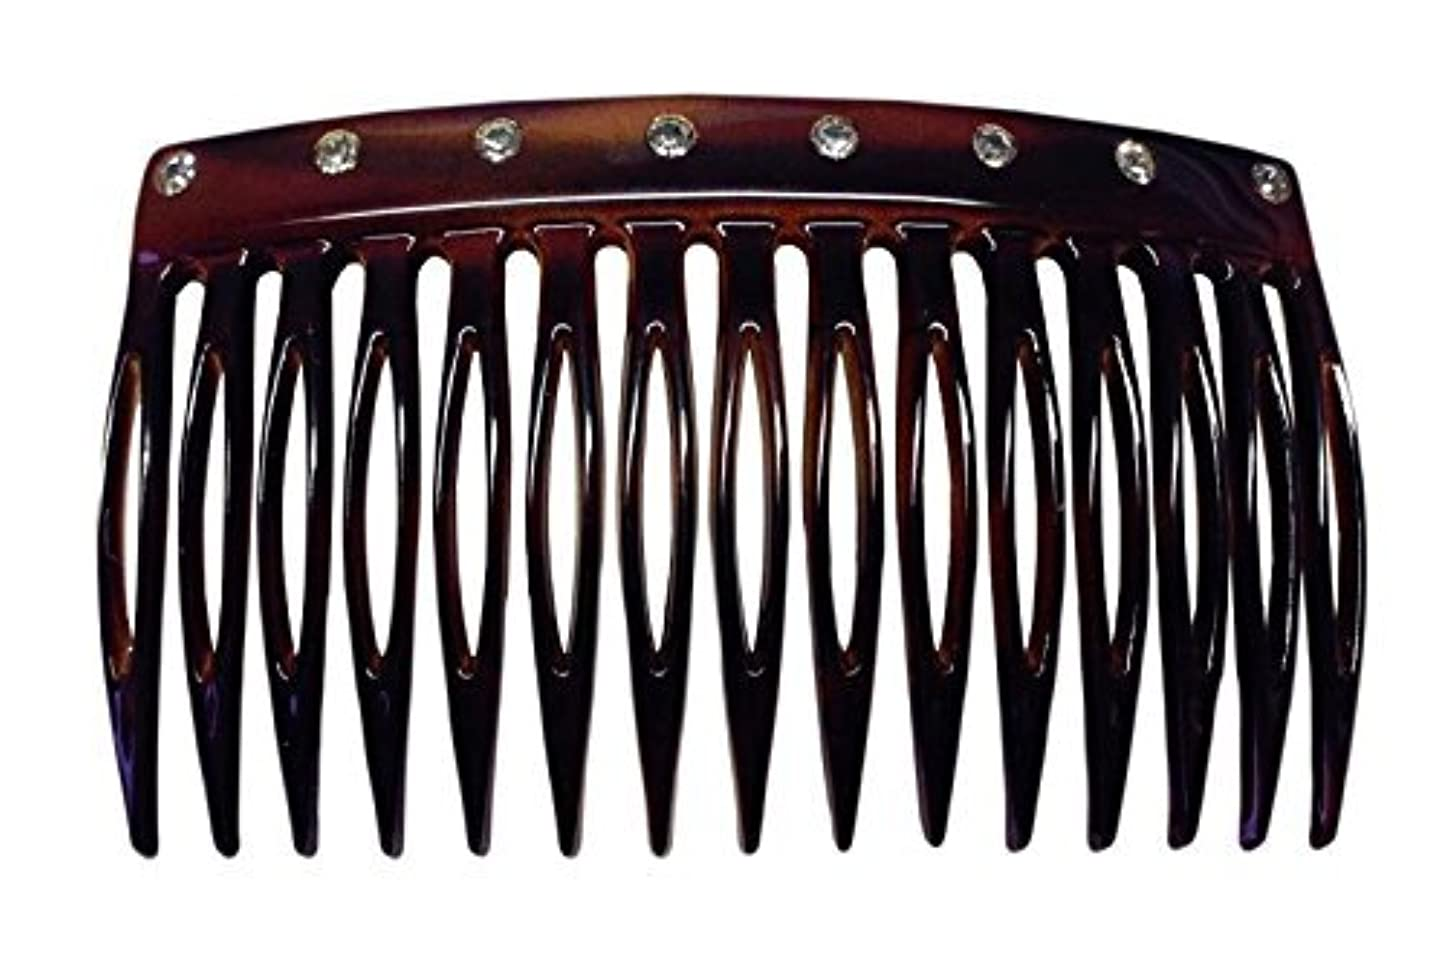 言い直すサイクロプス代理人Parcelona French Crystals Celluloid Shell Hair Updo Side Comb -2 3/4 Inch [並行輸入品]